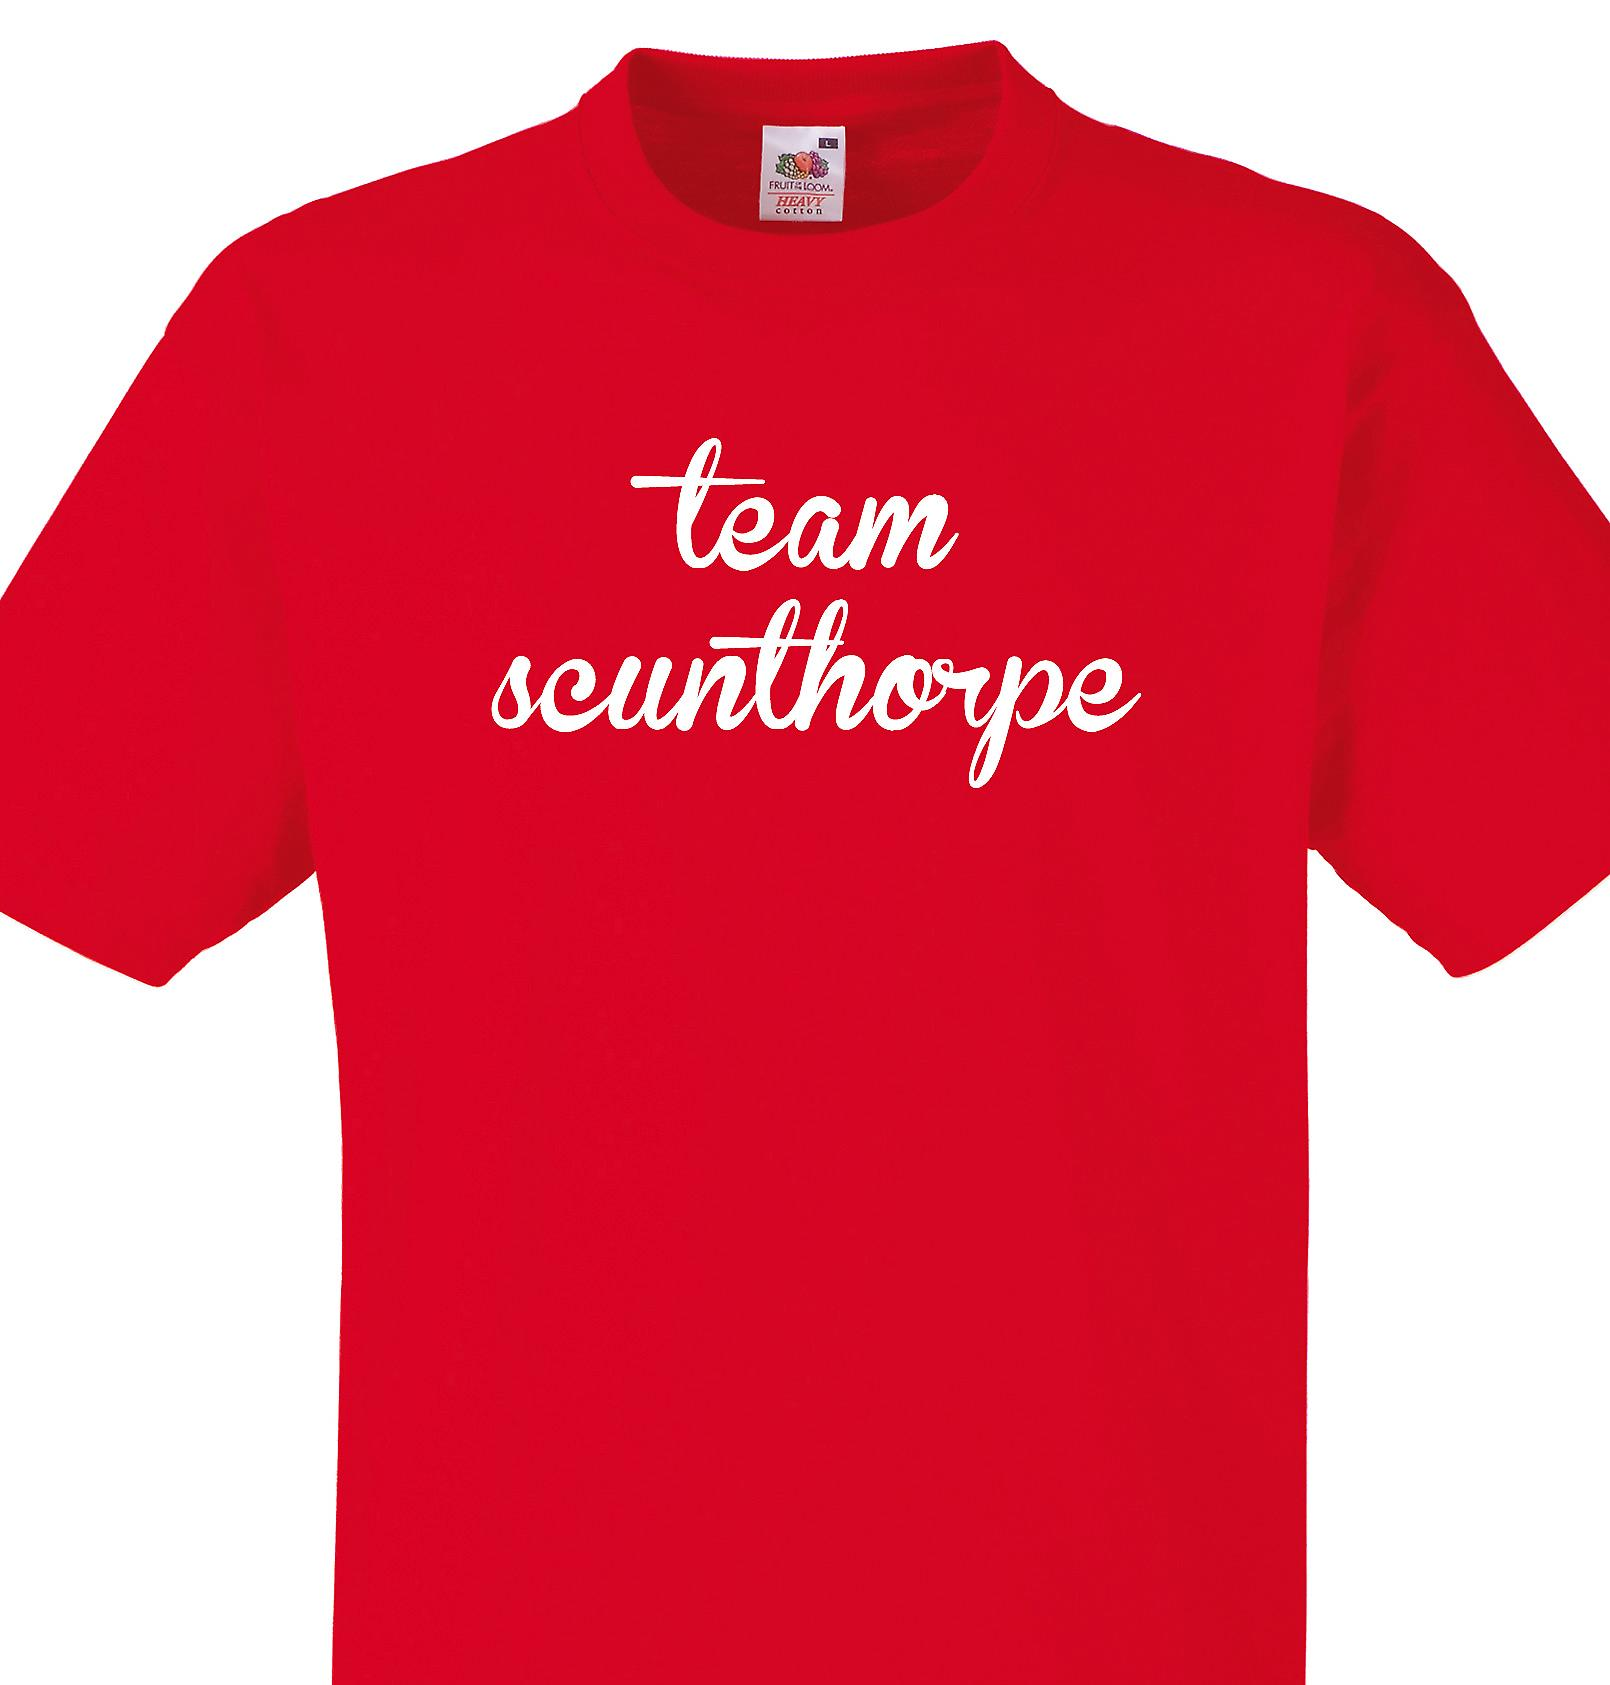 Team Scunthorpe Red T shirt